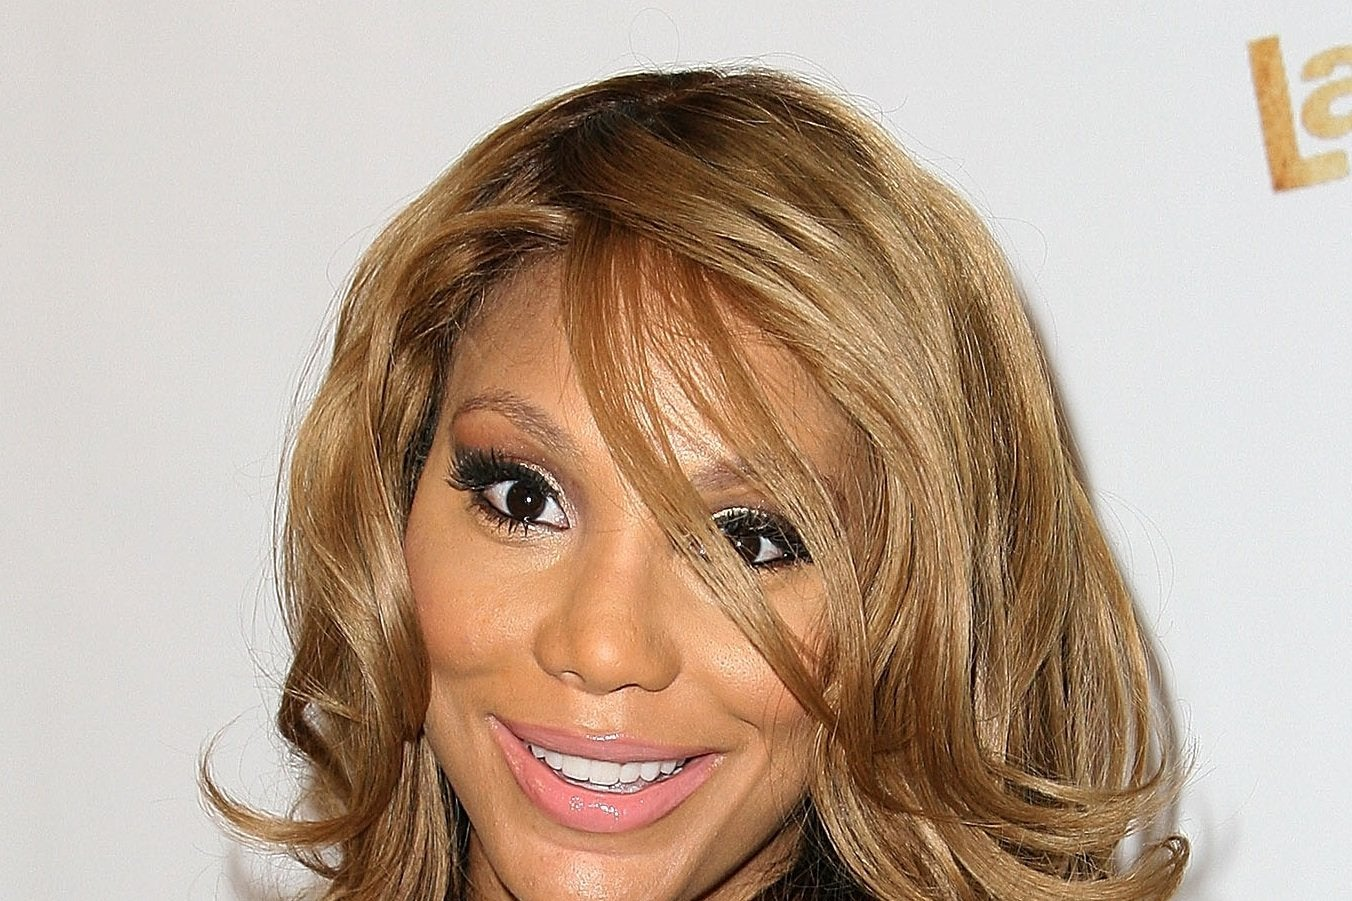 Tamar Braxton Dishes on Her Collection of Wigs and Weaves ...